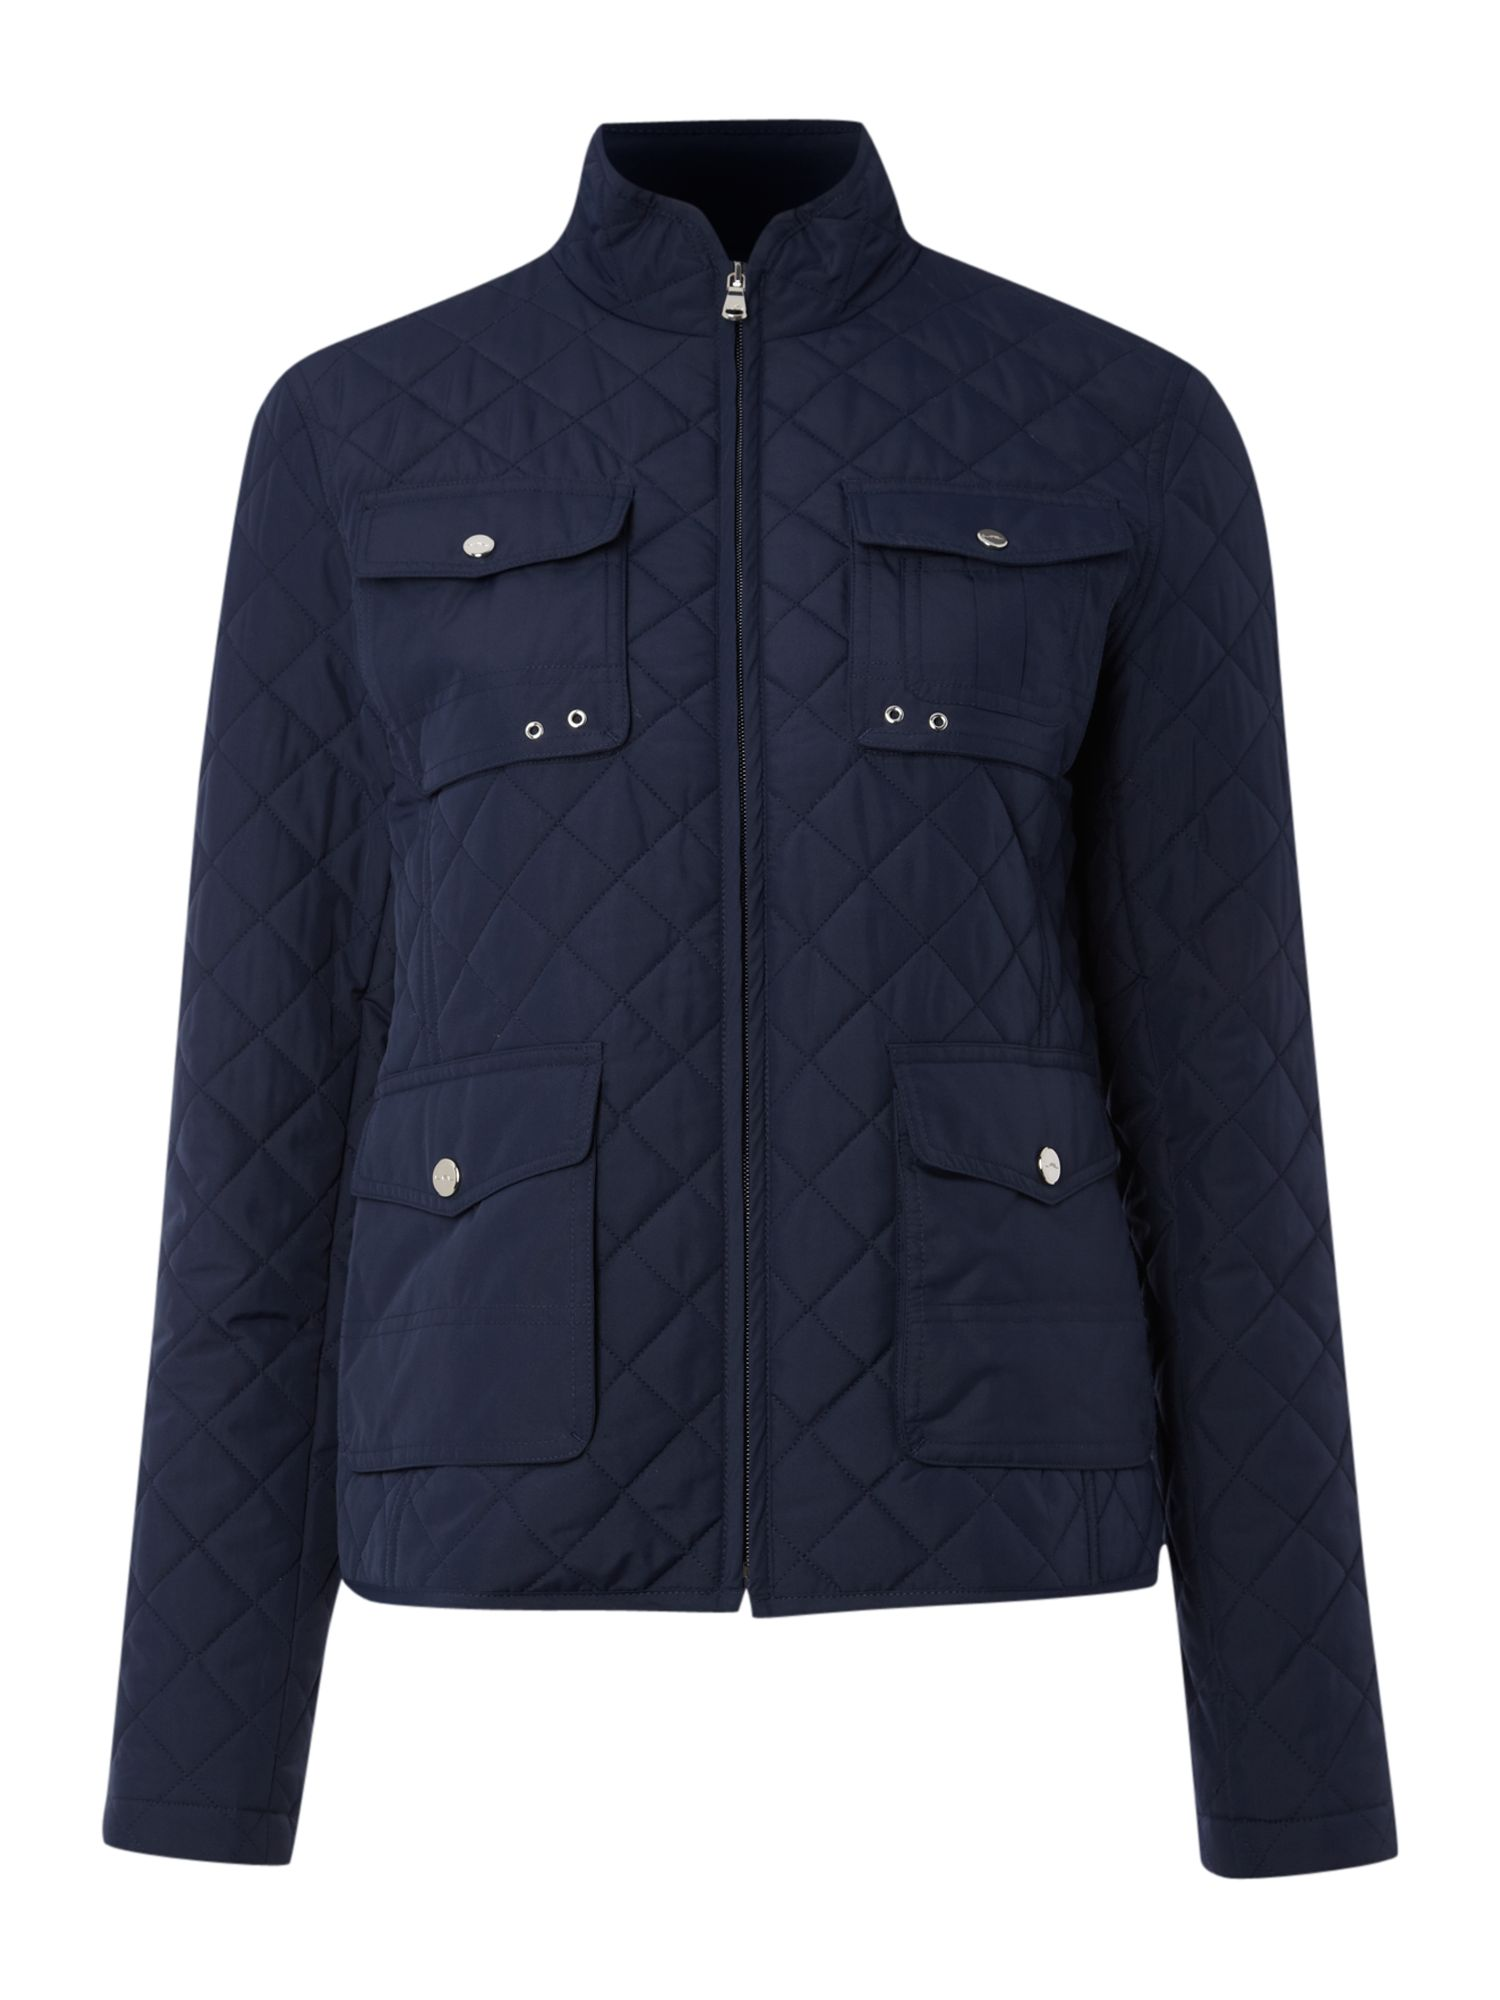 Padded jacket with pocket detail